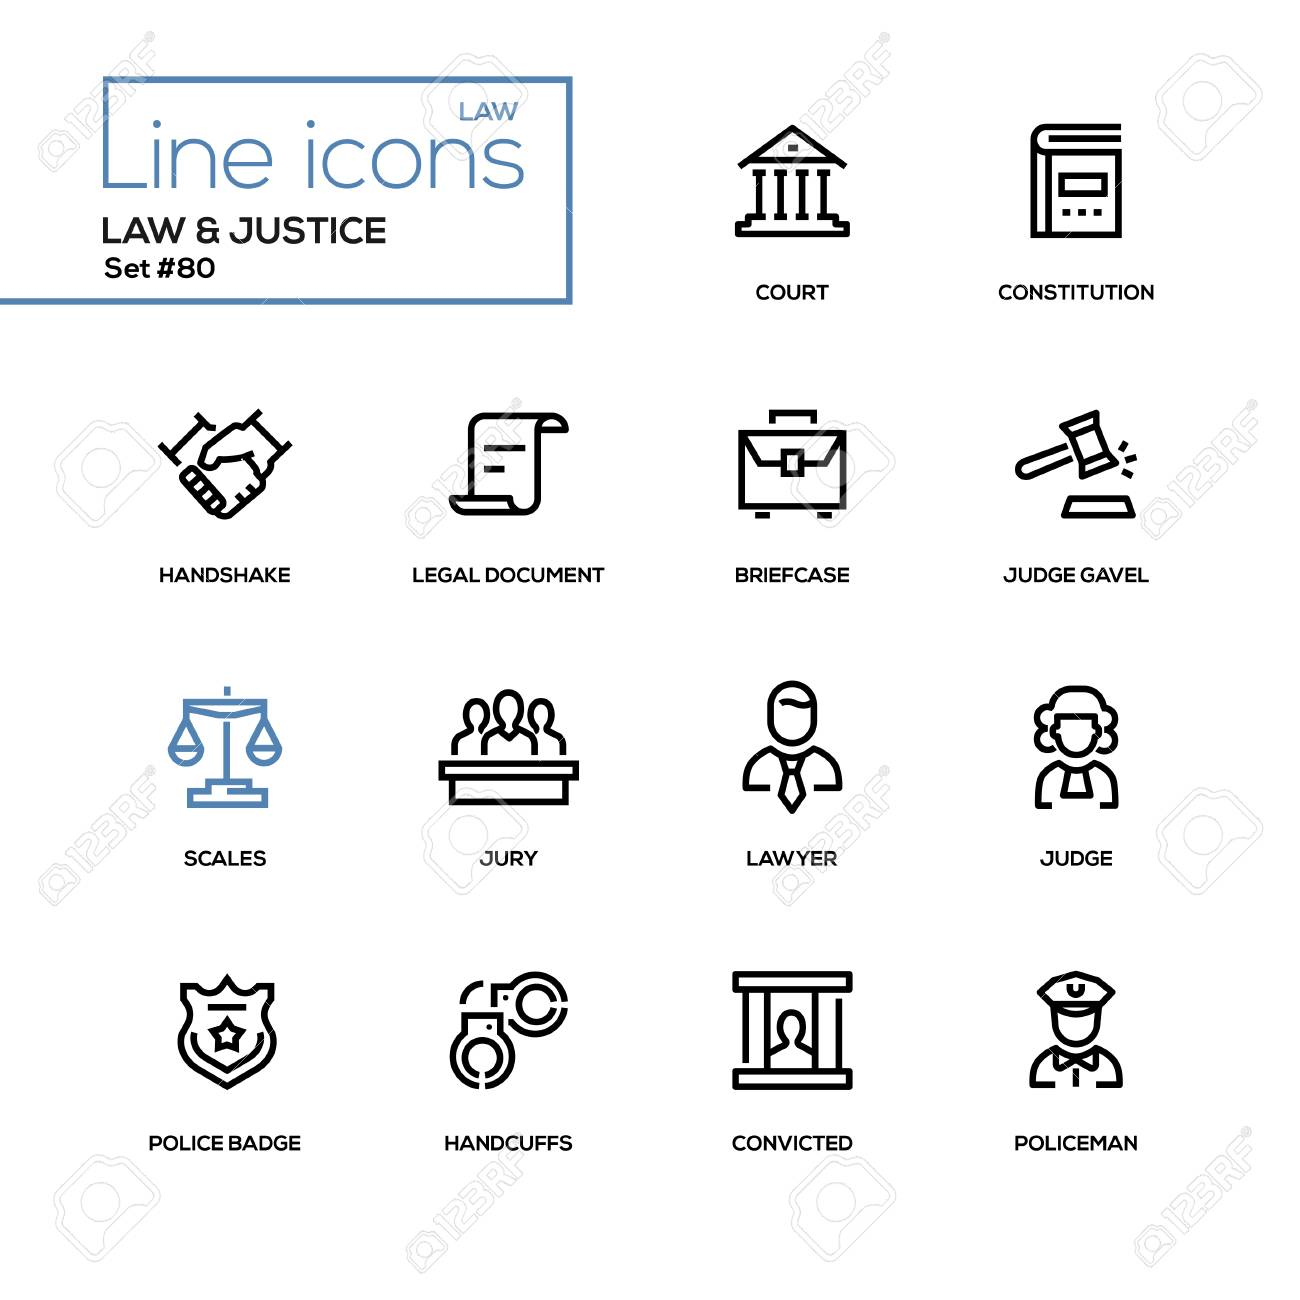 Law and justice - line design icons set. High quality pictogram. Court, constitution, handshake, legal document, briefcase, judge gavel, scales, lawyer, police badge, handcuffs, convicted, policeman - 92138346